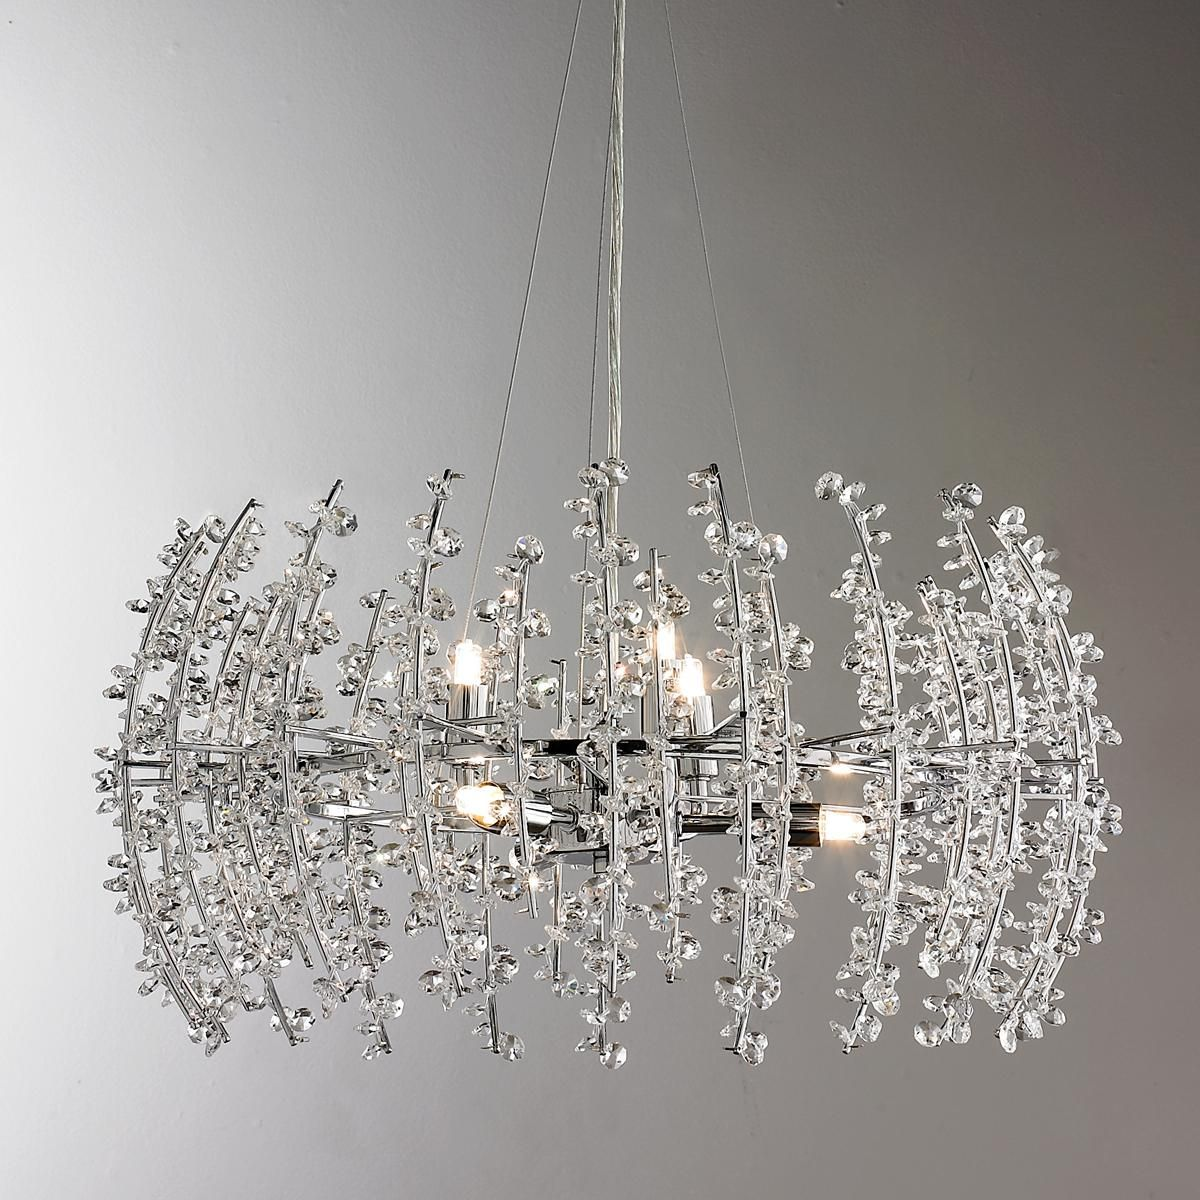 Contempo Crystal Chandelier | Modern crystal chandelier, Crystal chandelier,  Crystal chandelier lighting